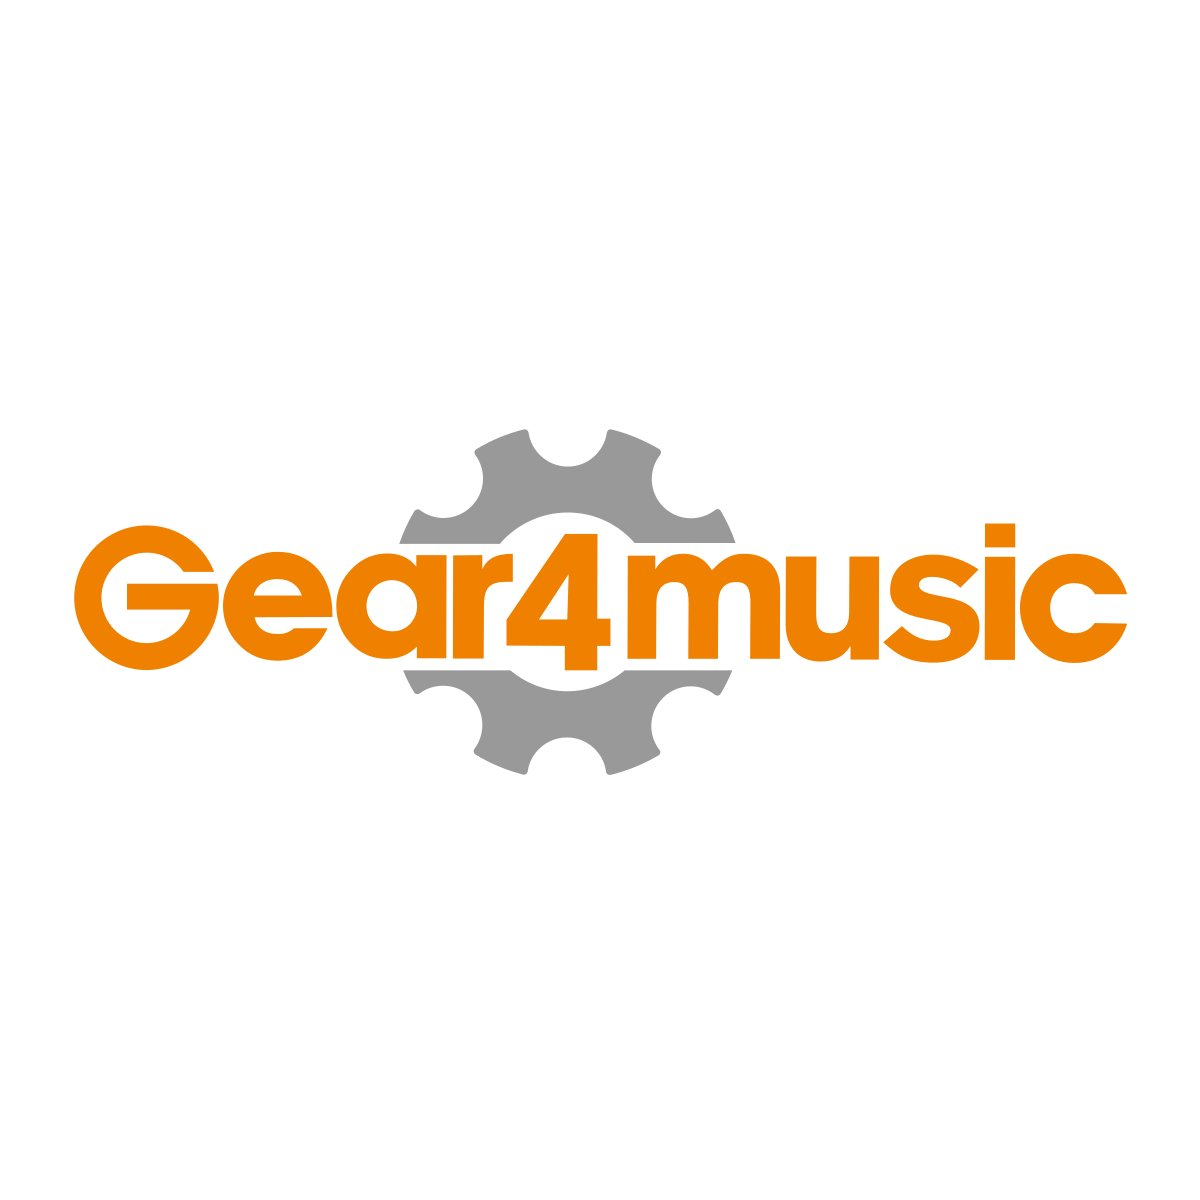 Piano Digital DP-20 de Gear4music + Pack Con Banqueta